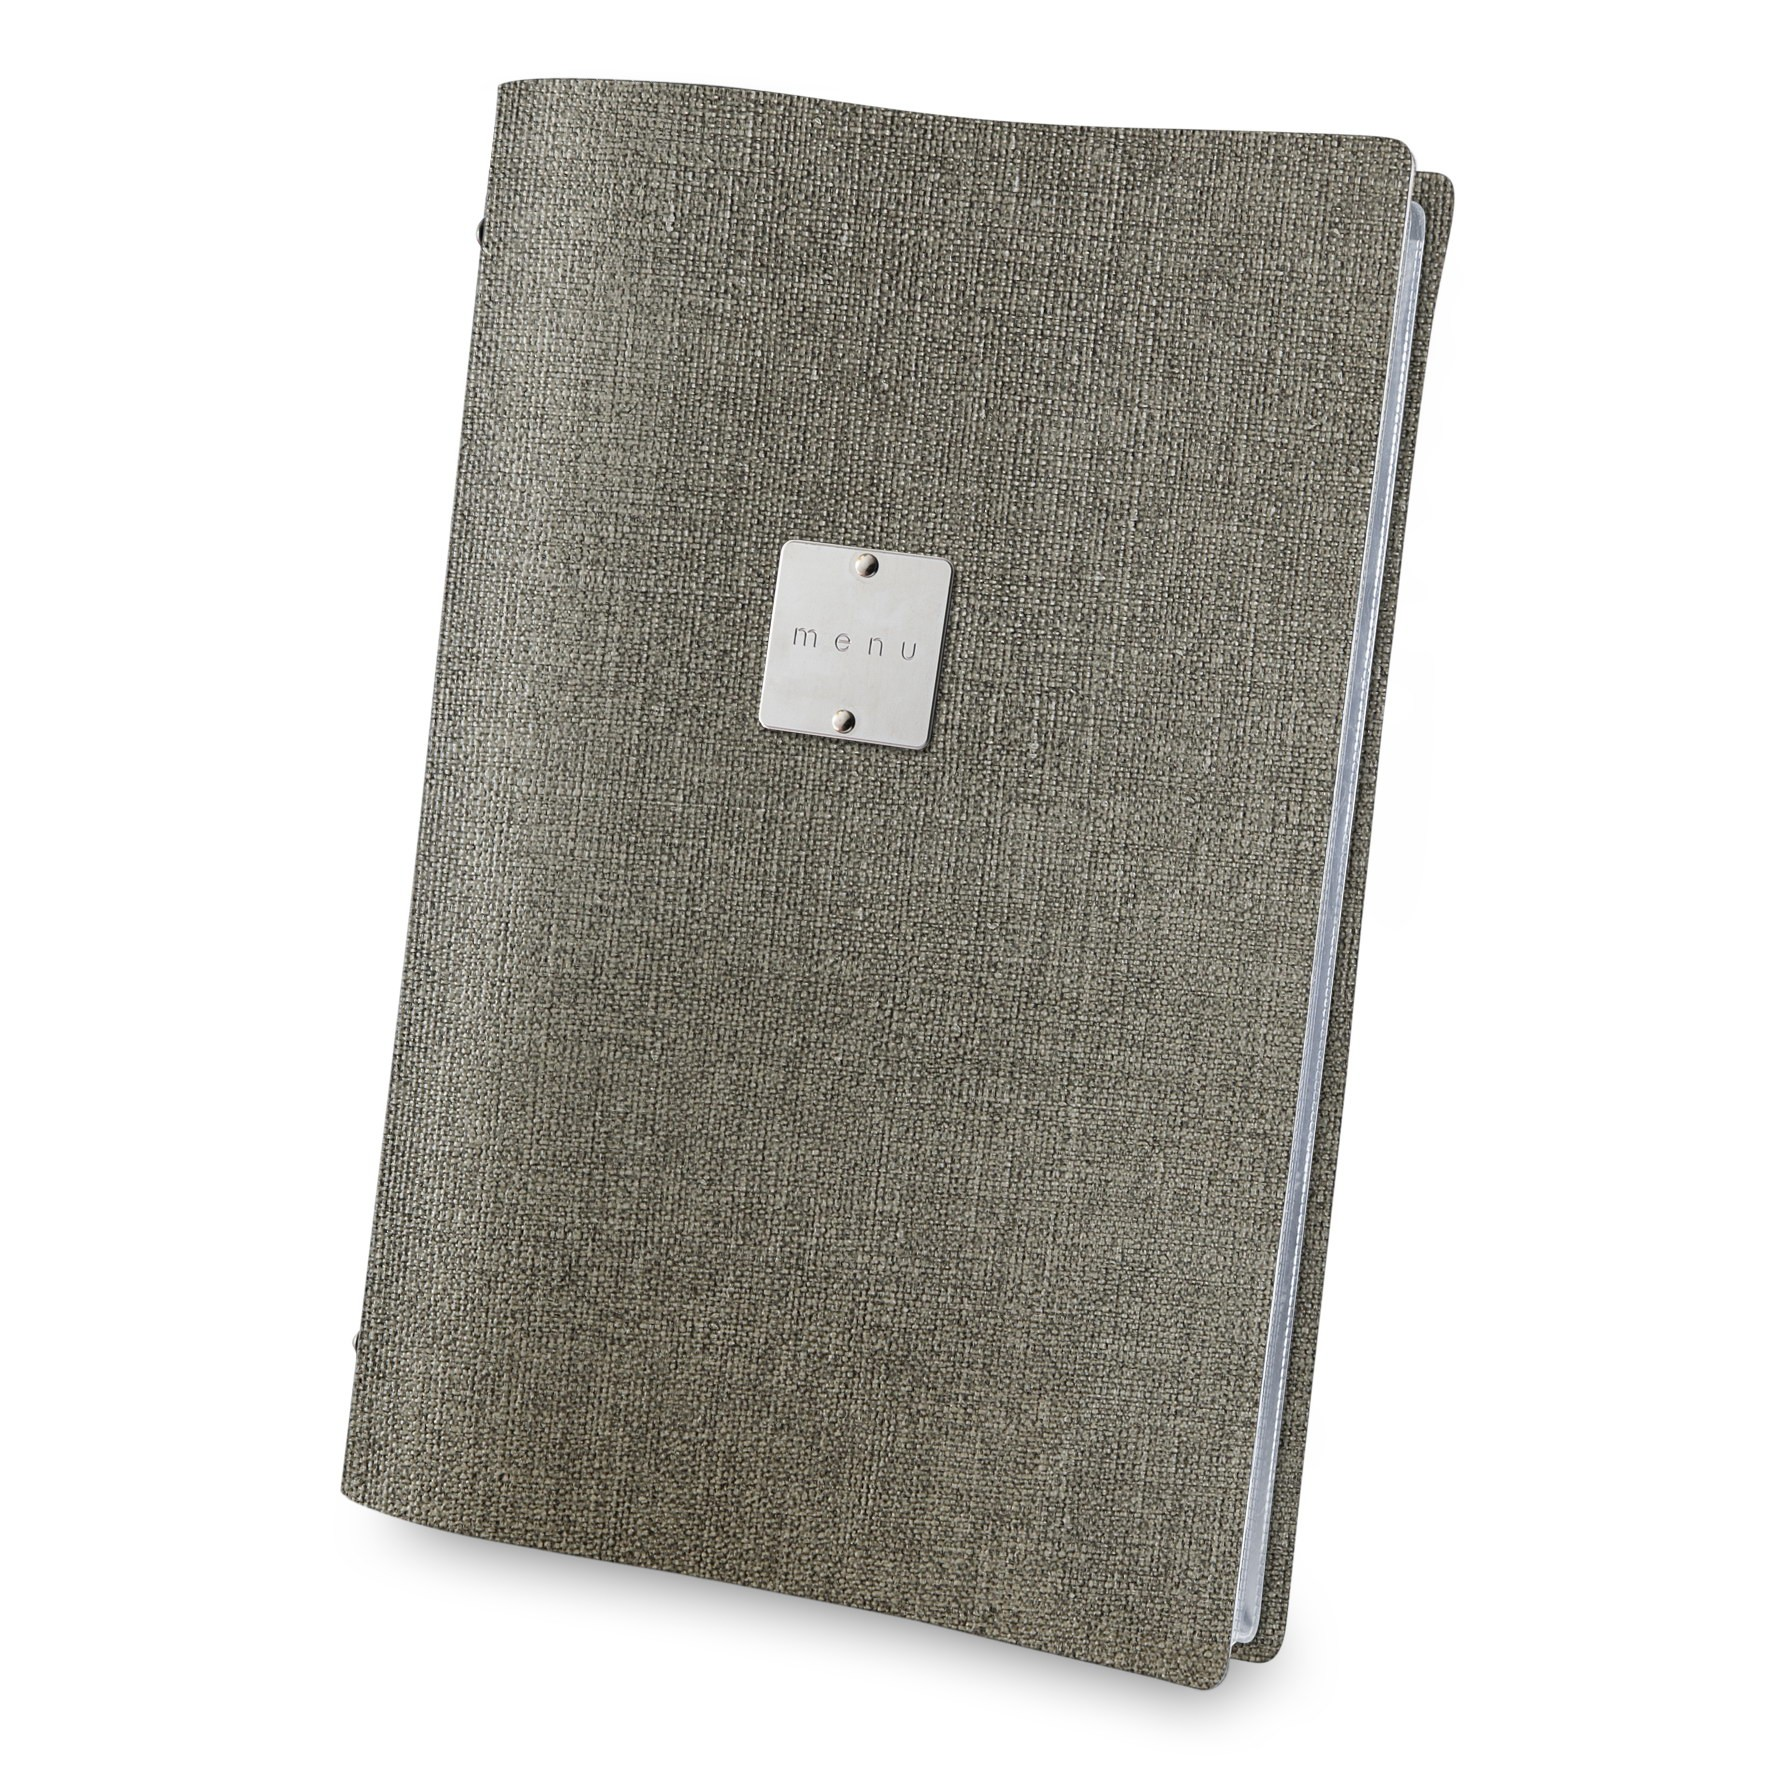 PVC menu cover in grey jute look